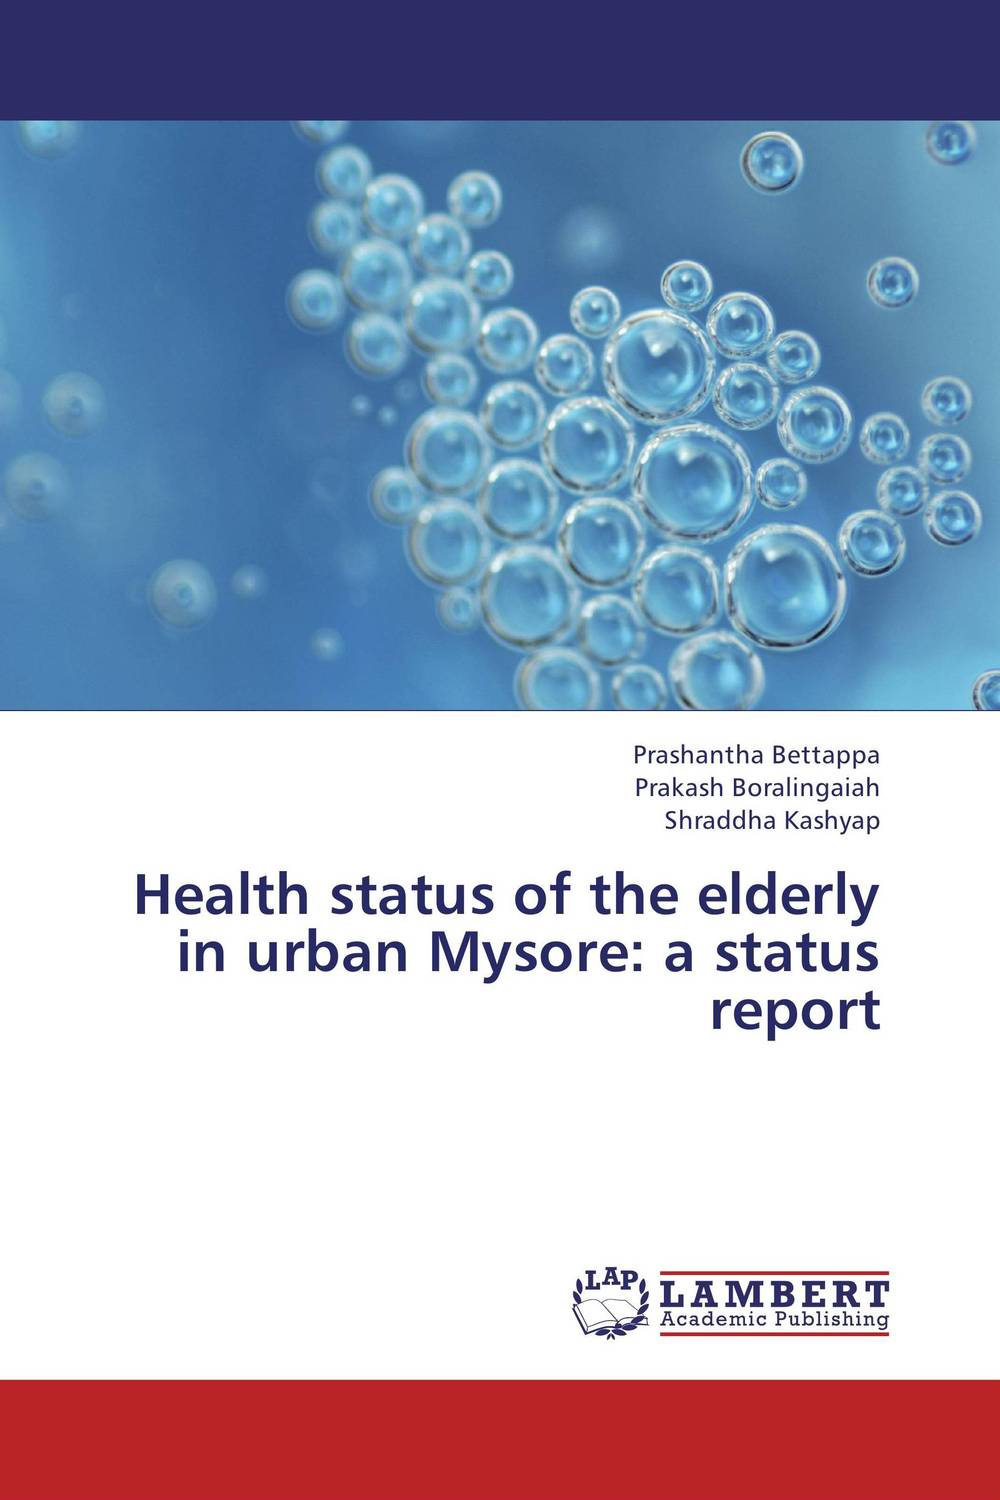 Health status of the elderly in urban Mysore: a status report psychiatric and physical morbidity in an urban geriatric population